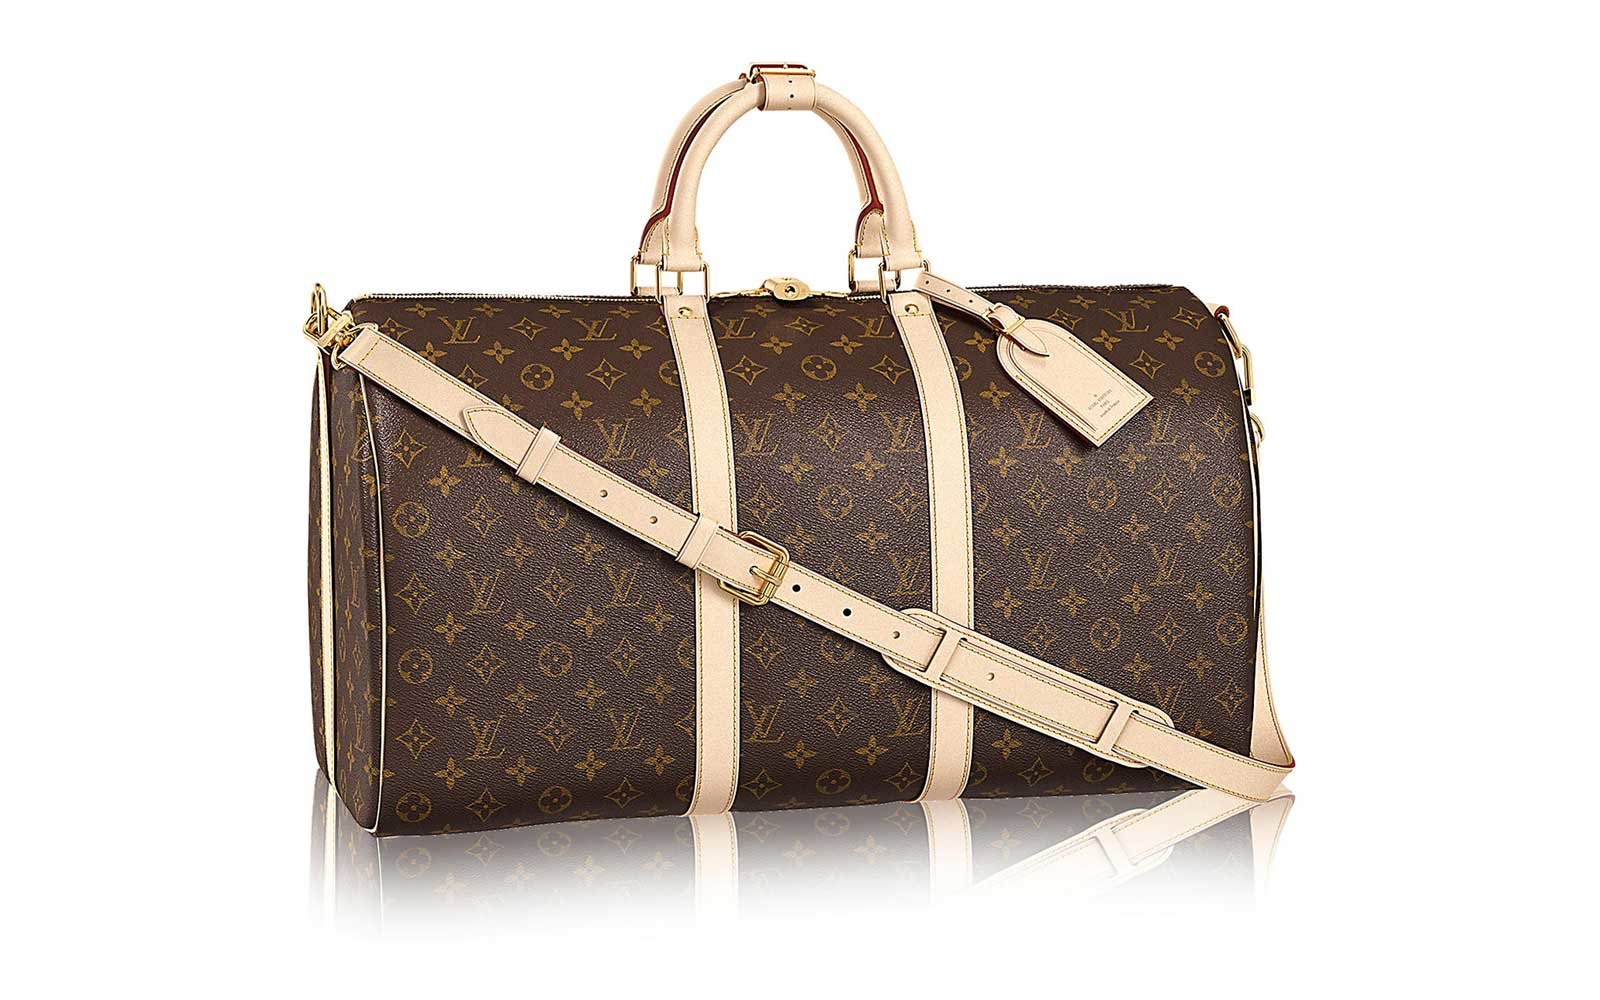 Louis Vuitton Duffel Bag for Travel